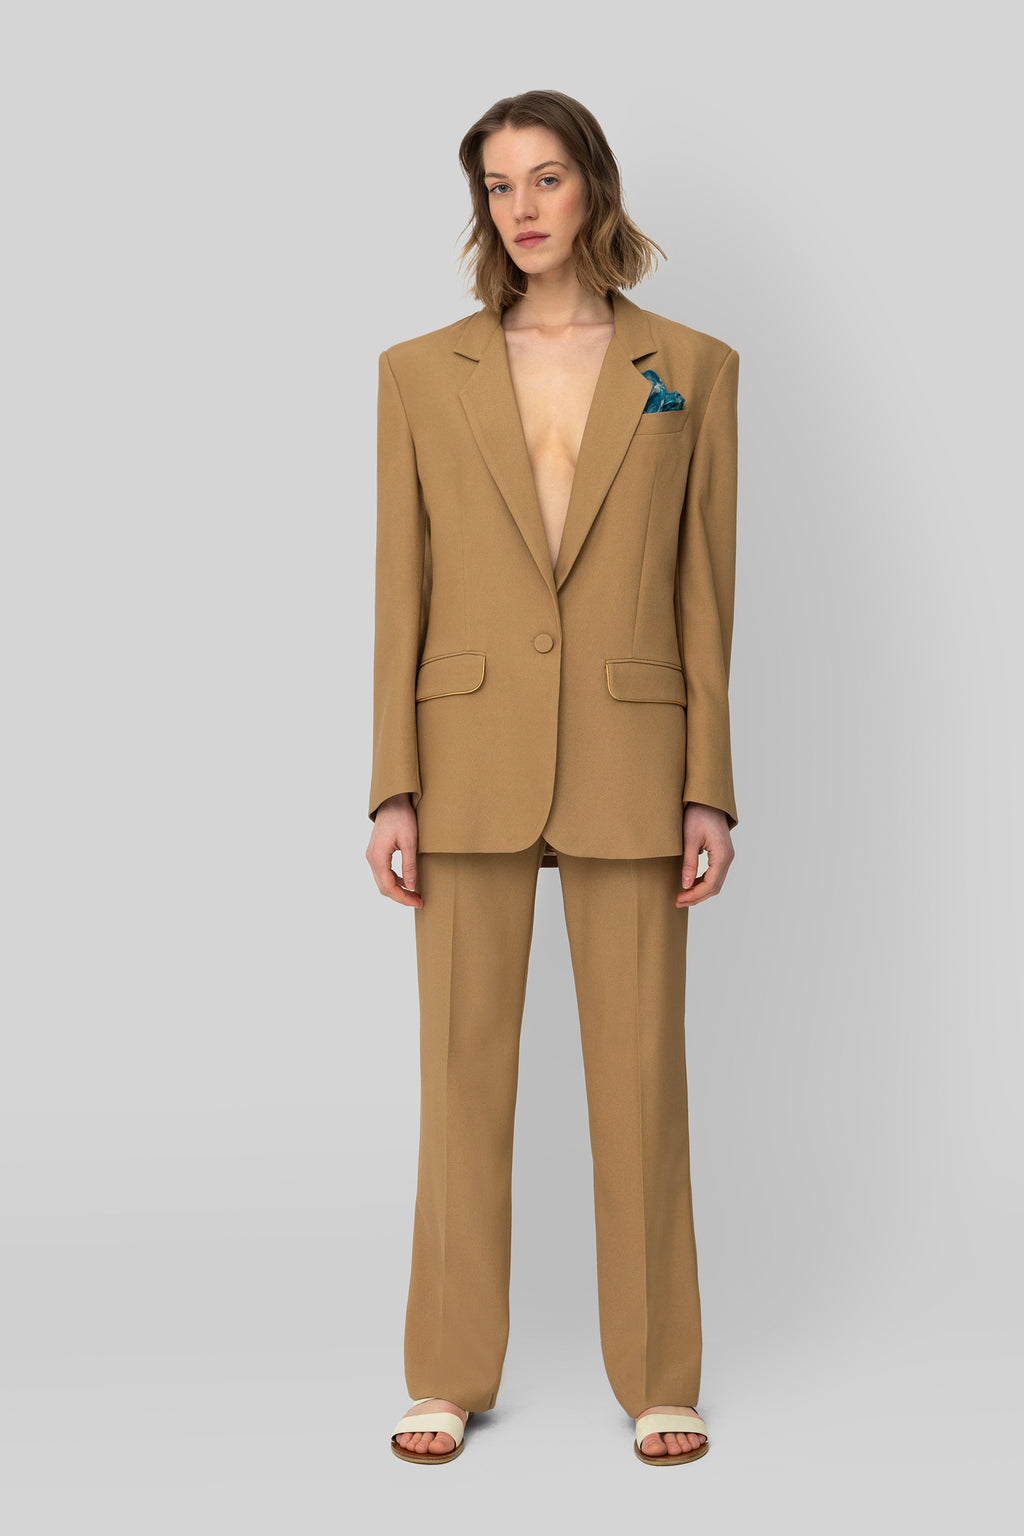 The Nude Lover Blazer